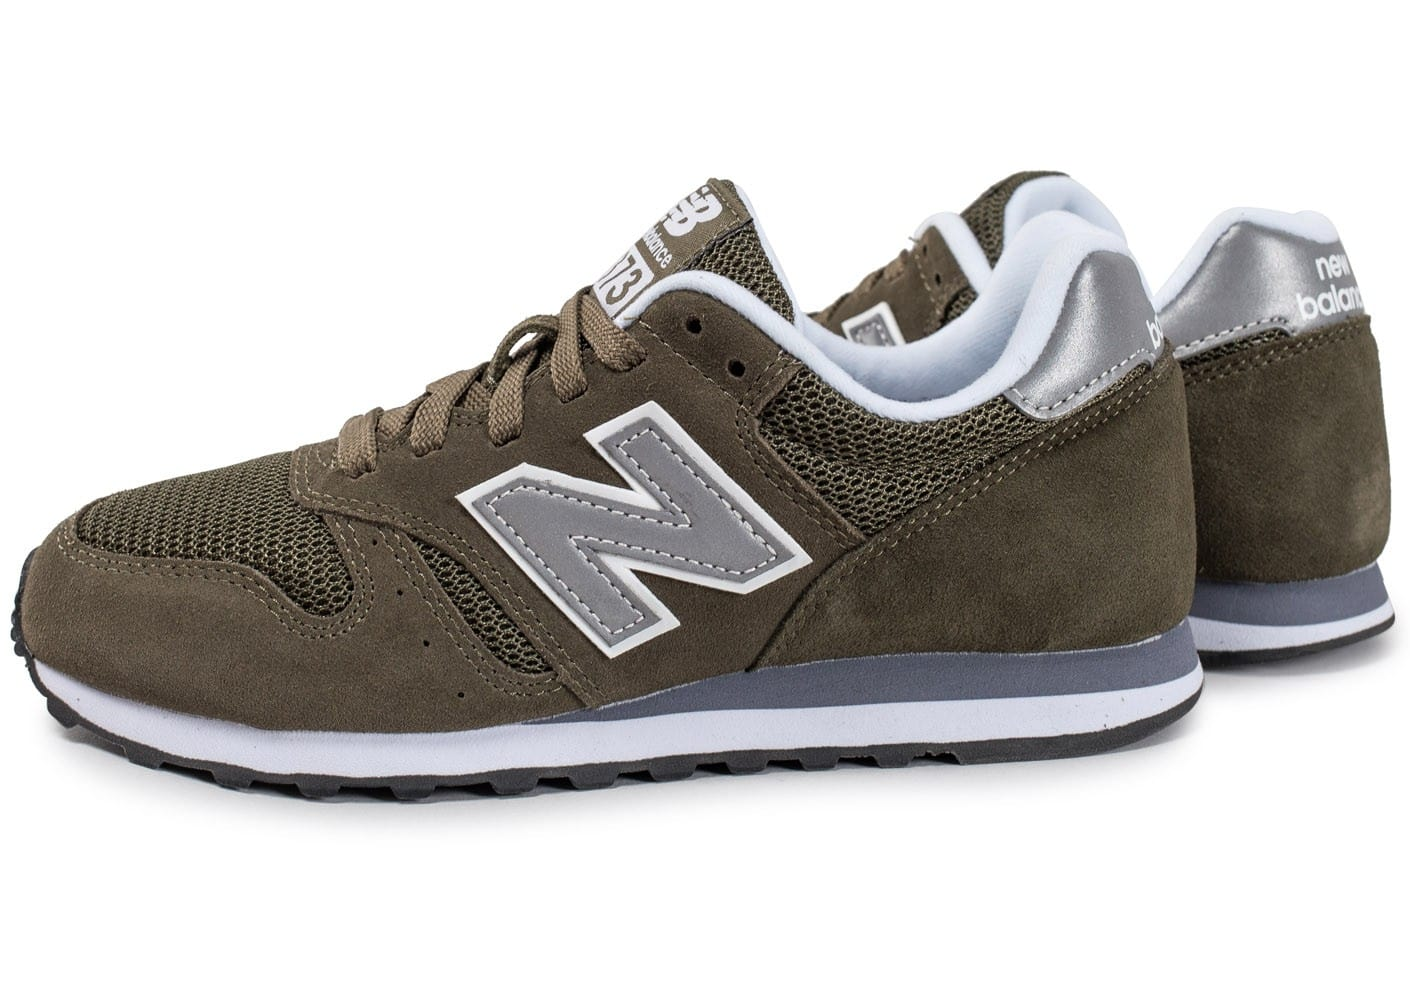 new balance ml373 olv kaki chaussures pour lyc ens chausport. Black Bedroom Furniture Sets. Home Design Ideas